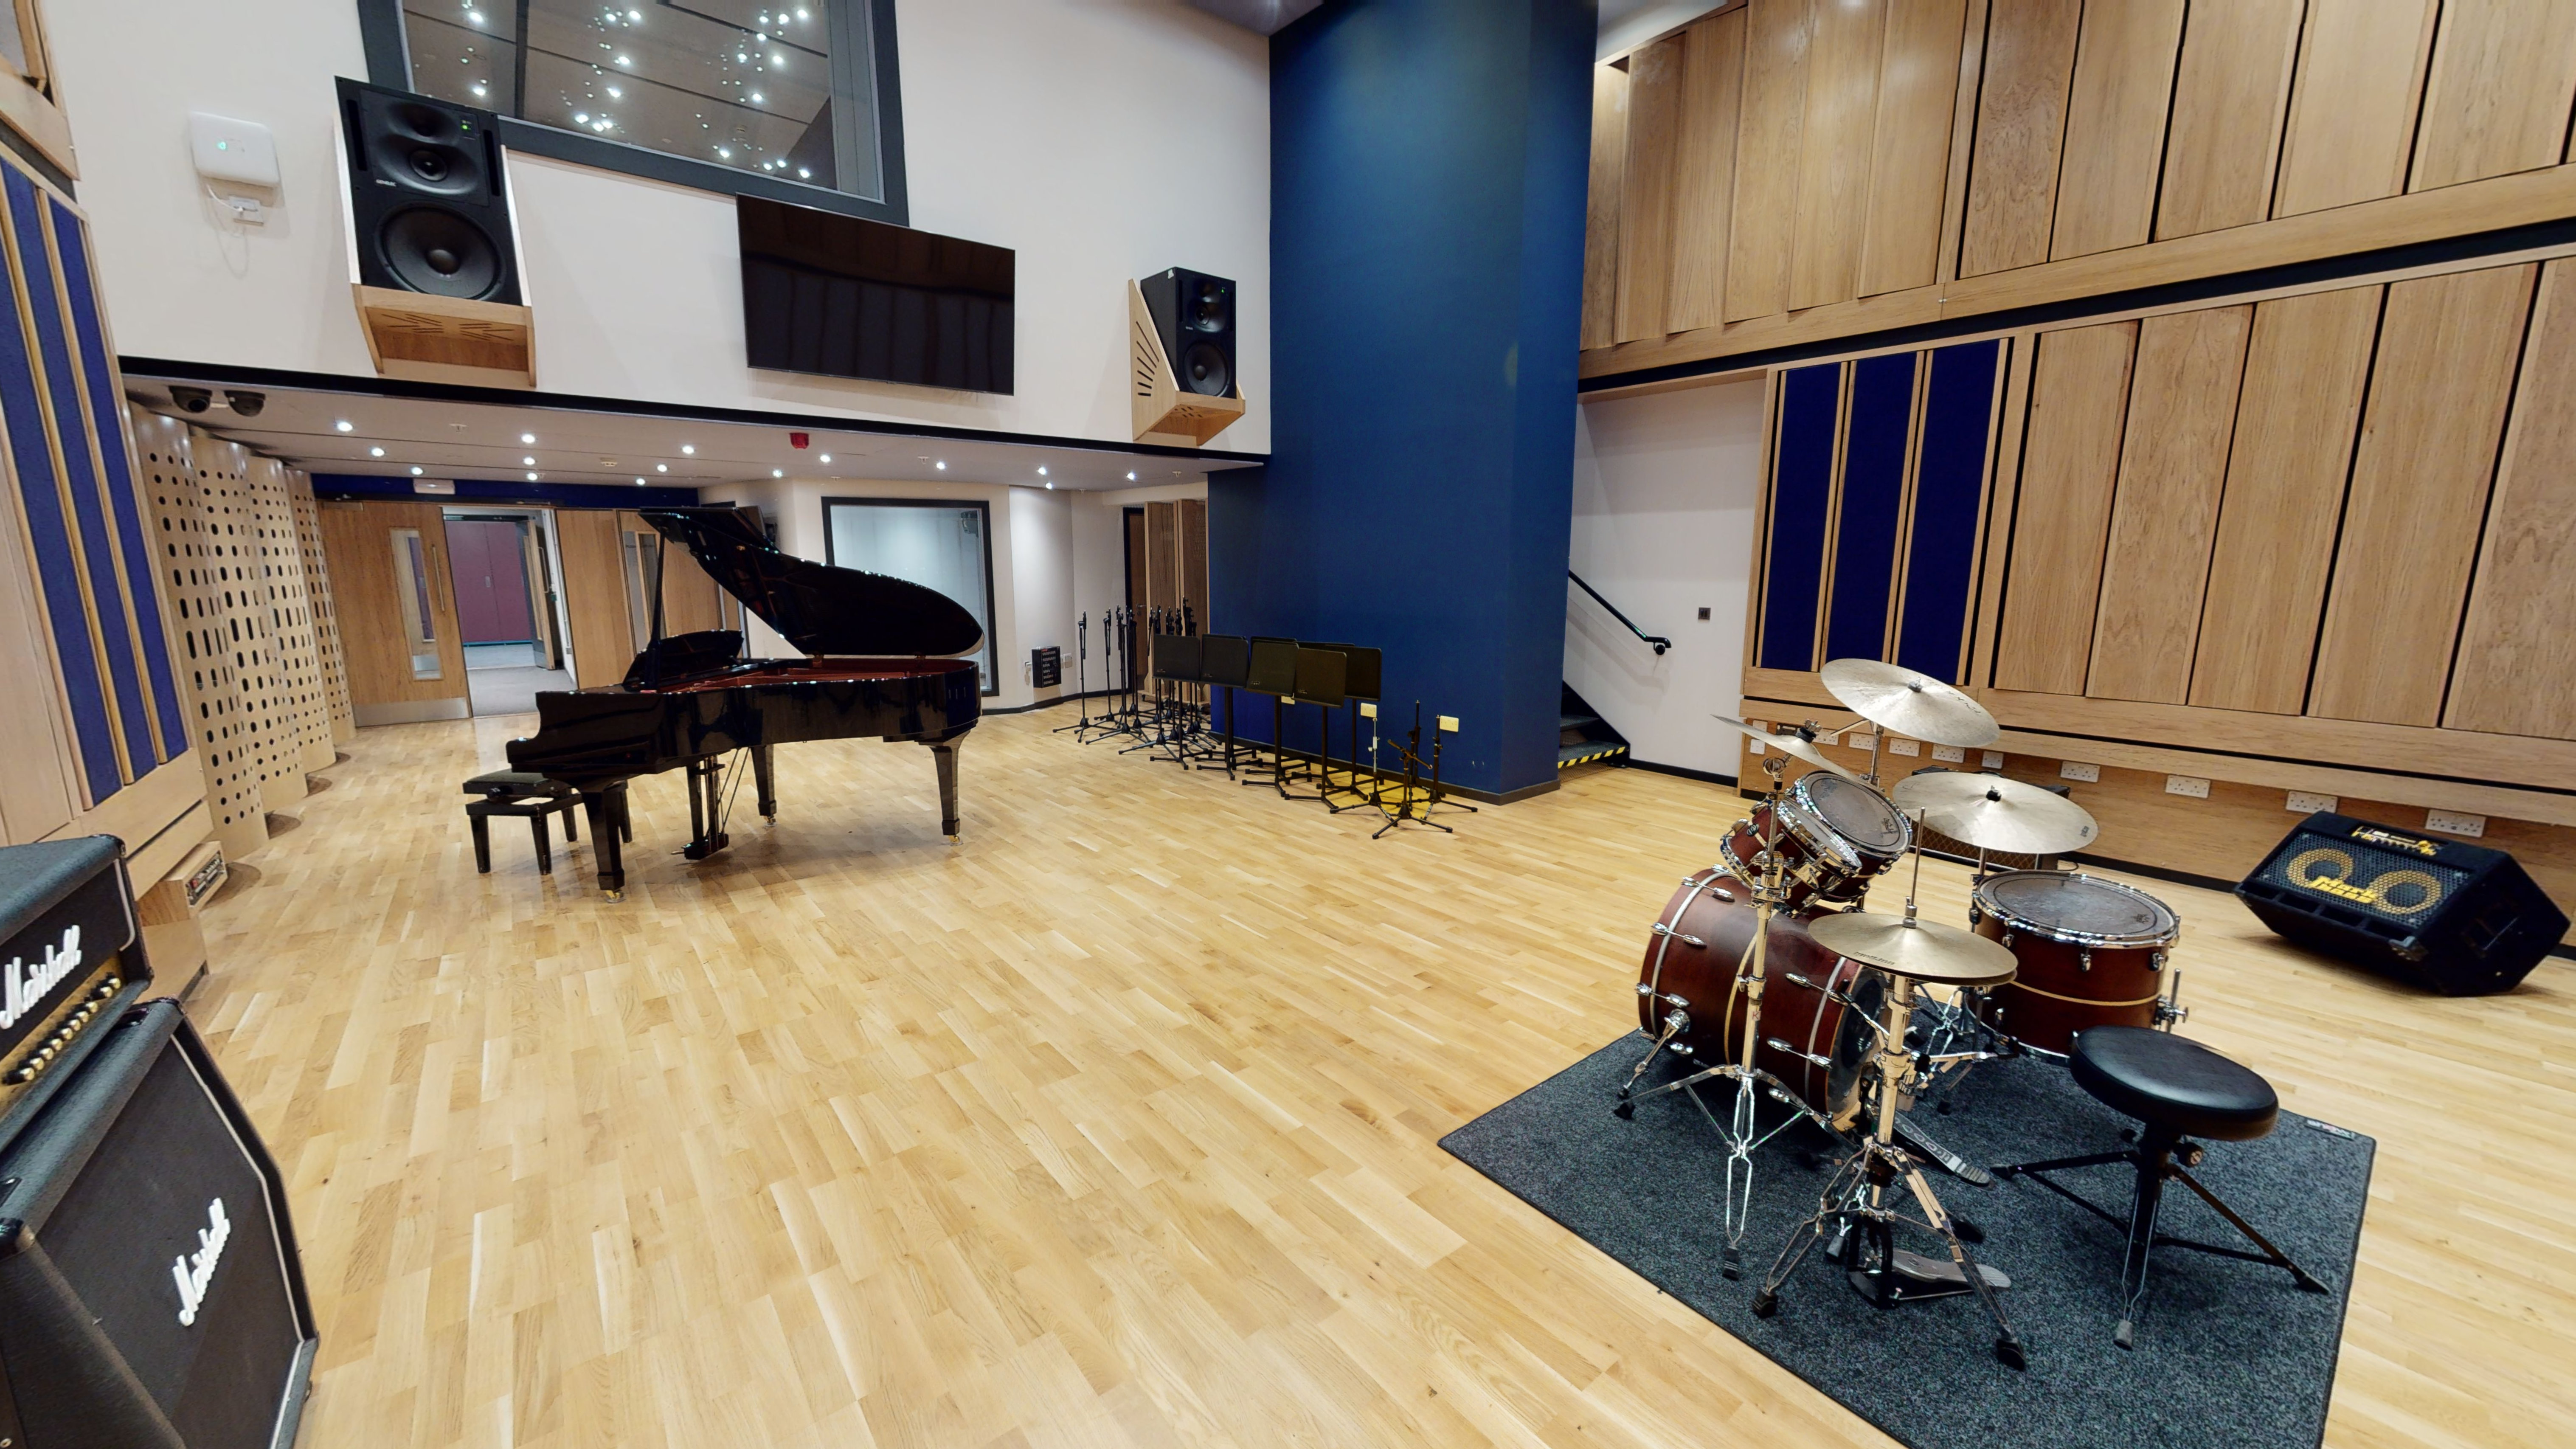 Large double height recording studio with a drum set and amp in foreground and a grand piano towards the back. Up above is a window from the control room.